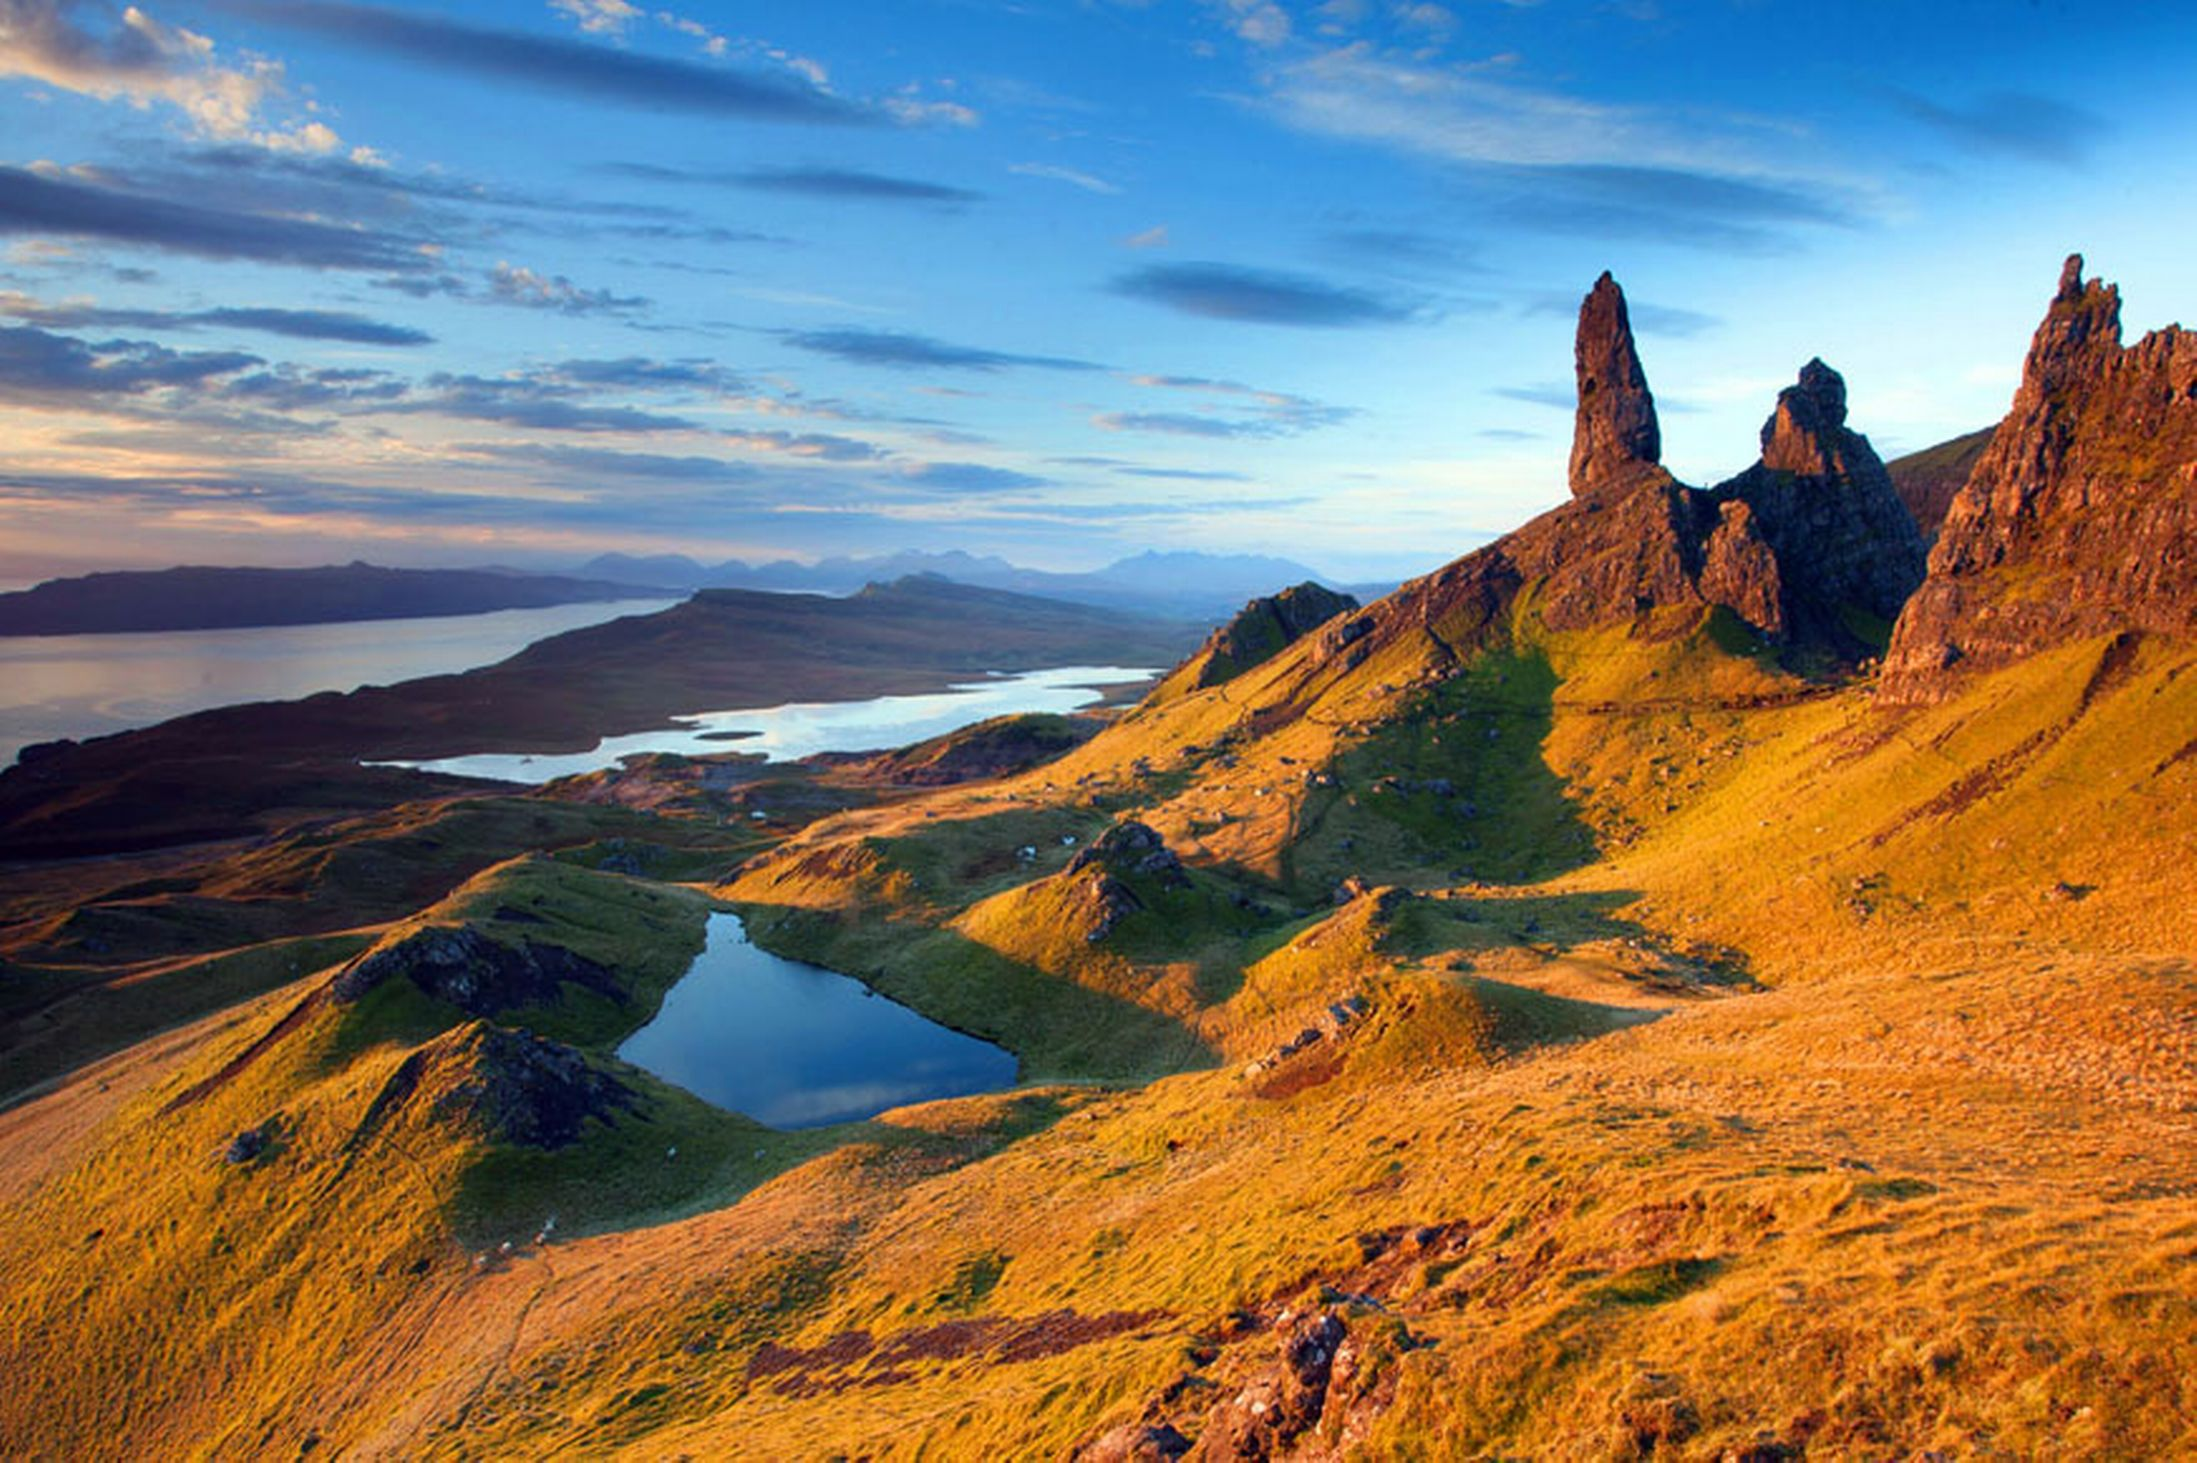 Sunrise-over-the-Old-Man-of-Storr-on-the-Isle-of-Skye-2641169